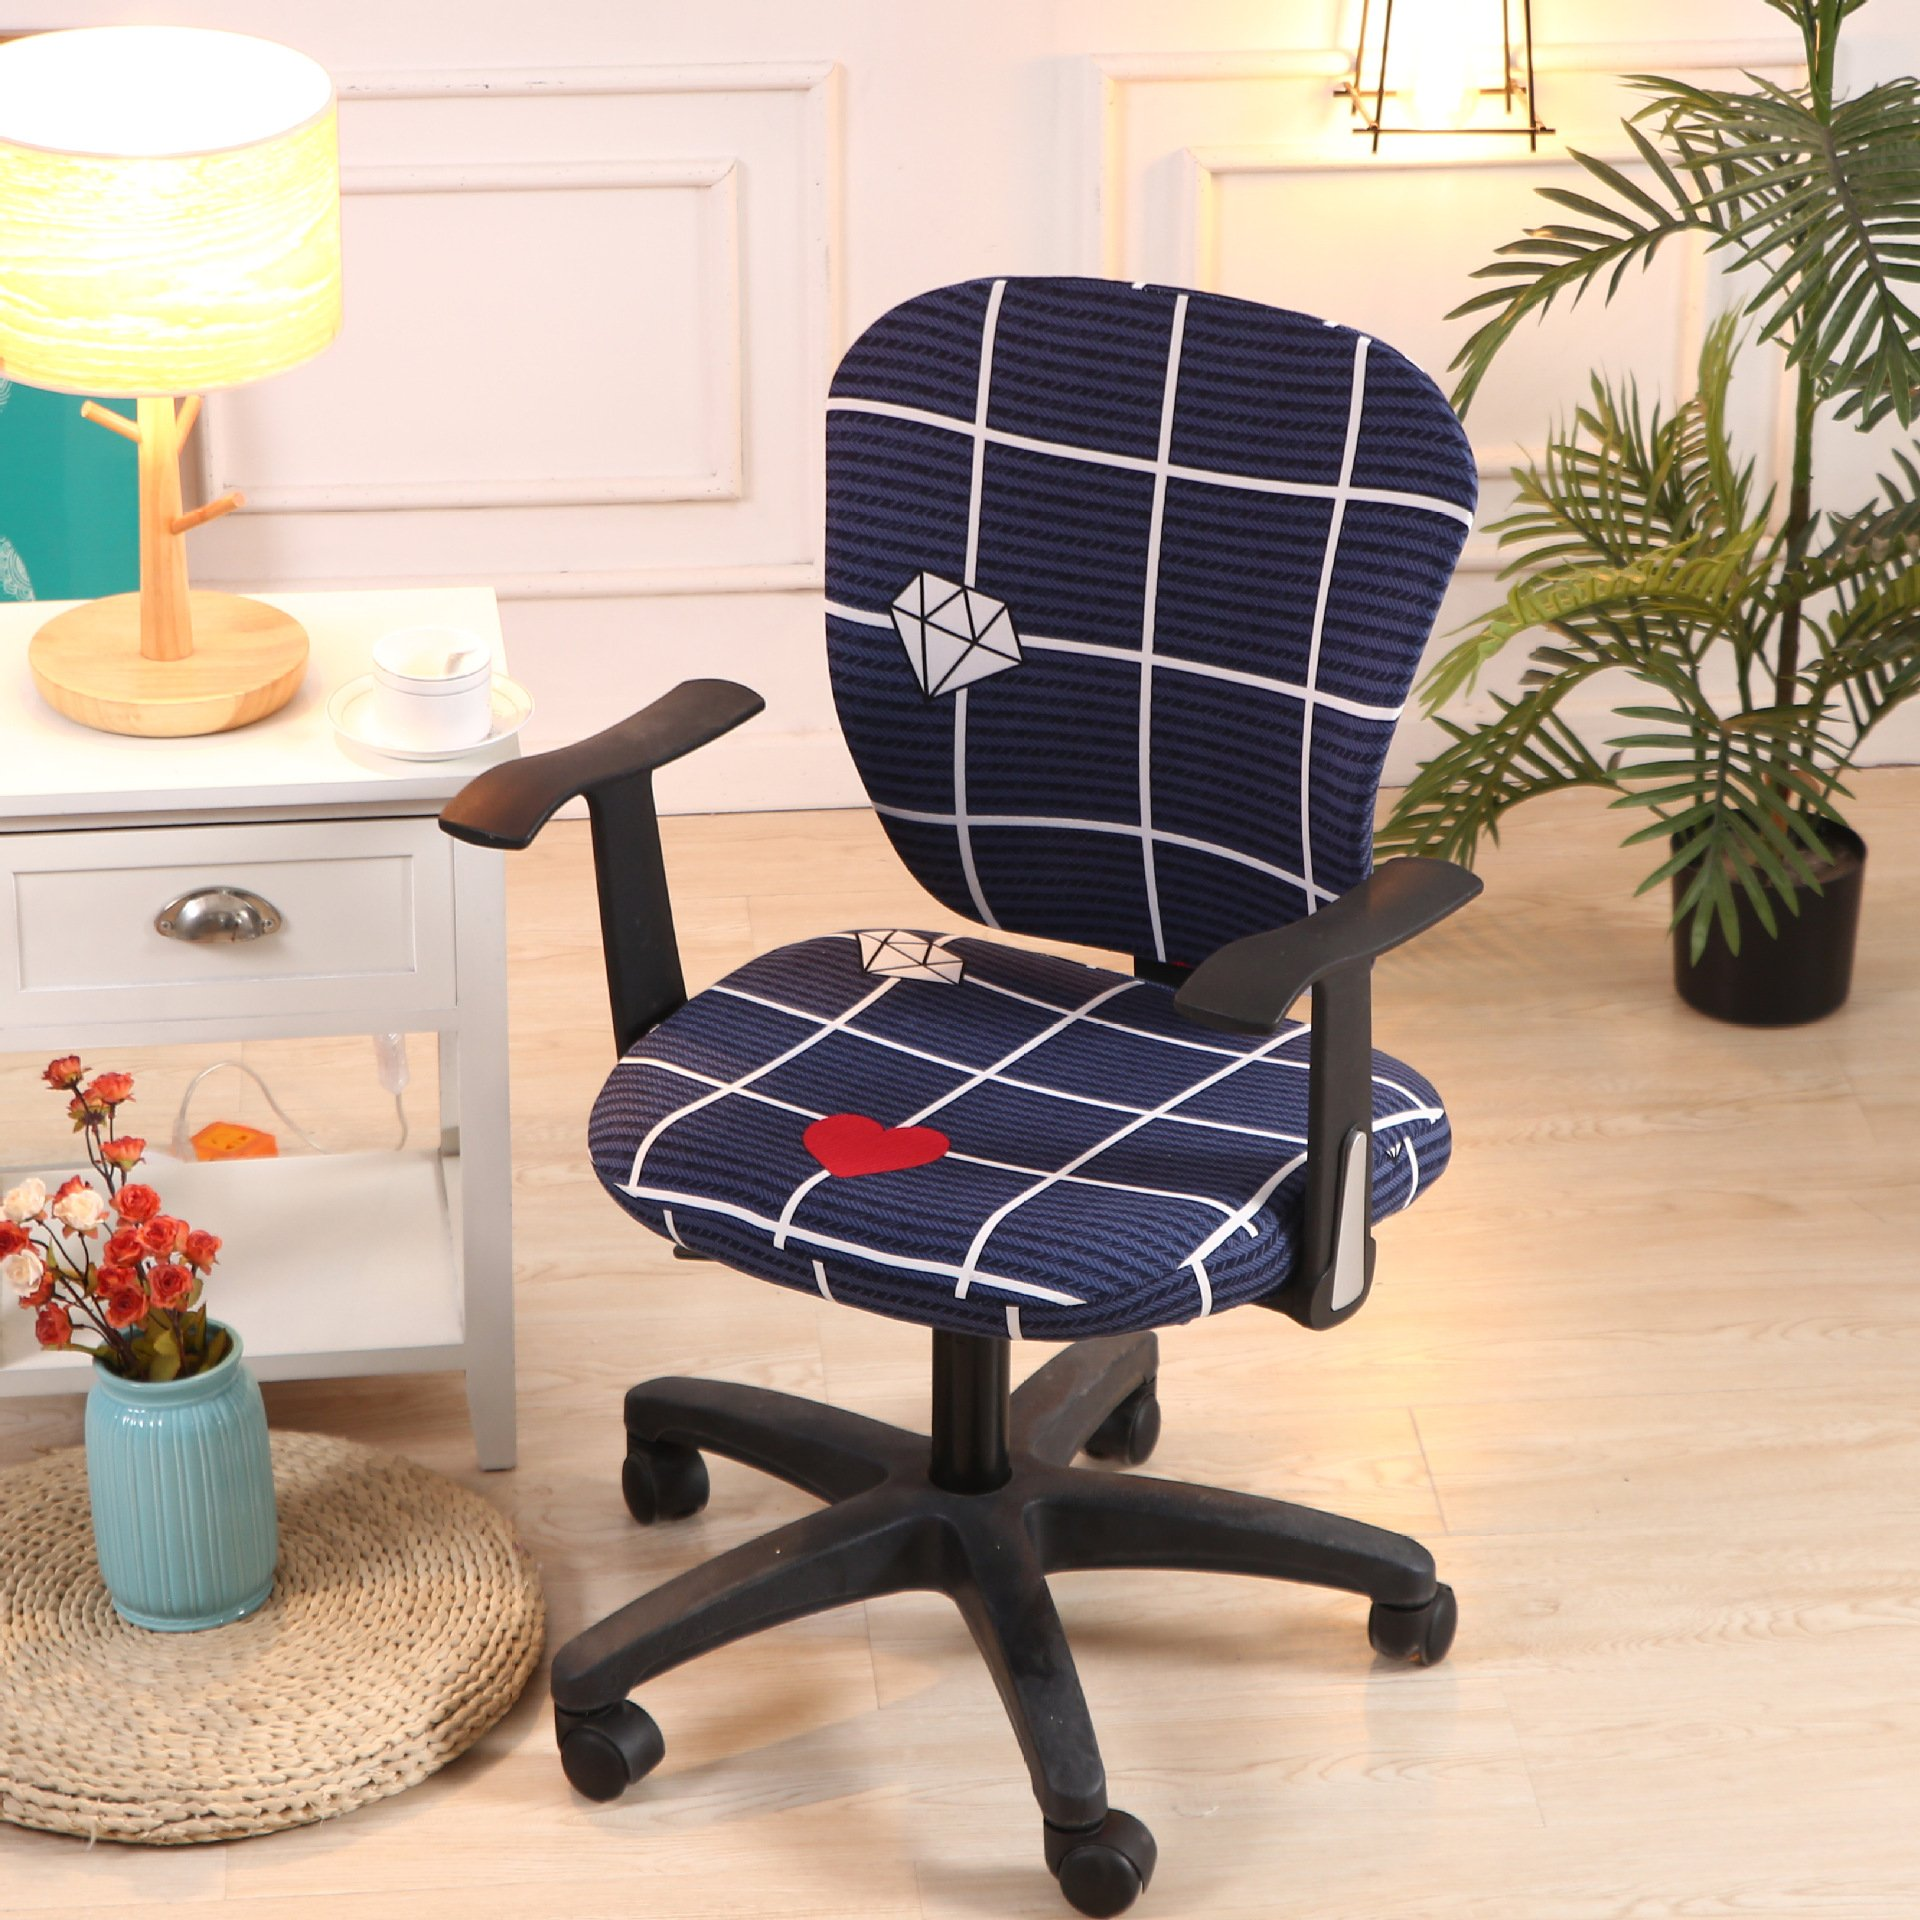 2020 New Decorative Computer Office Chair Cover